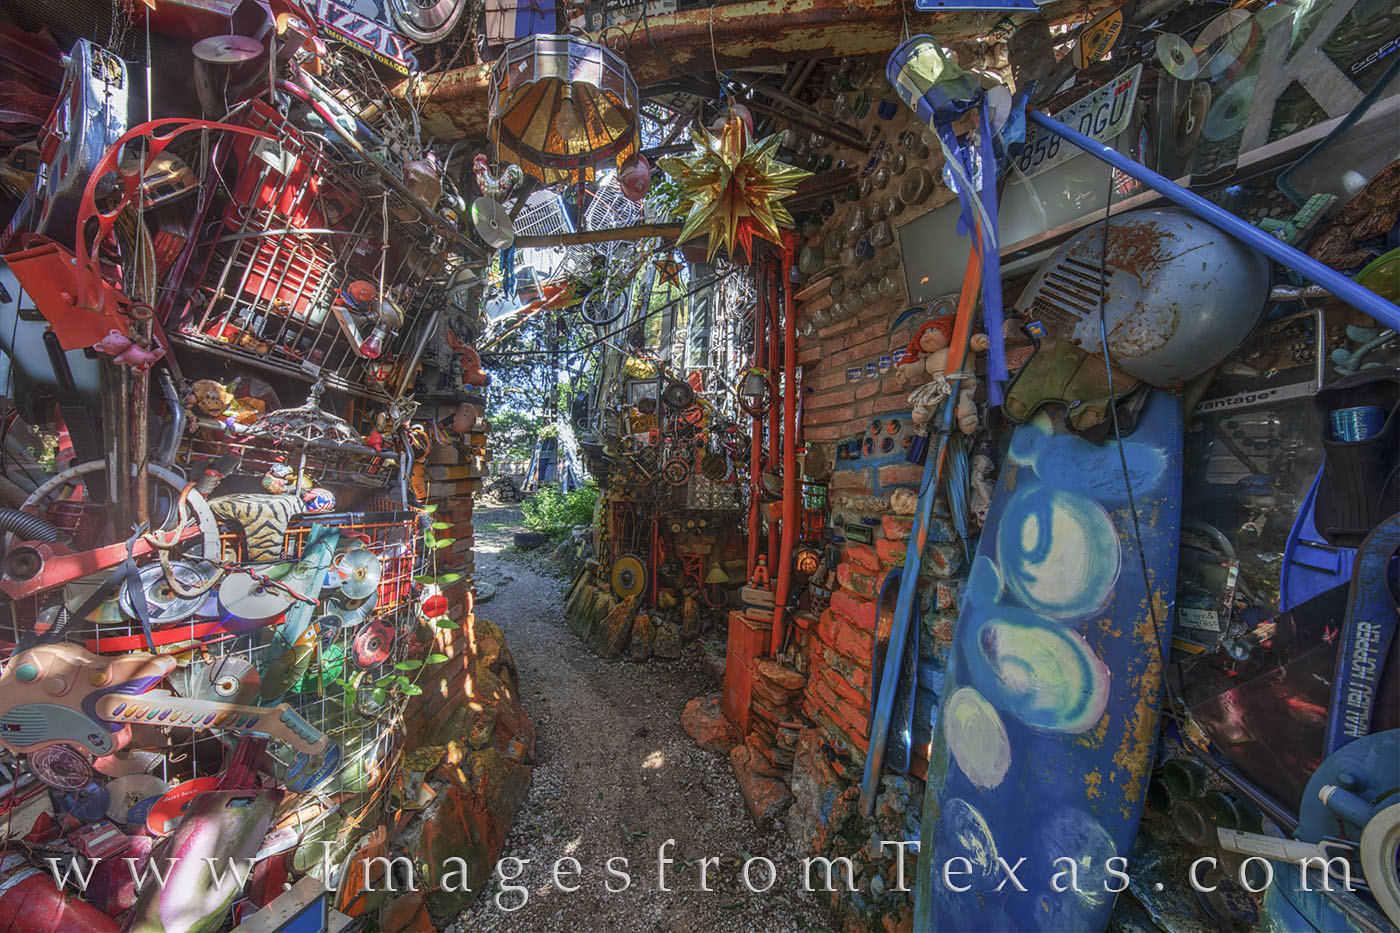 cathedral of junk, south austin, austin icon, junk, photo